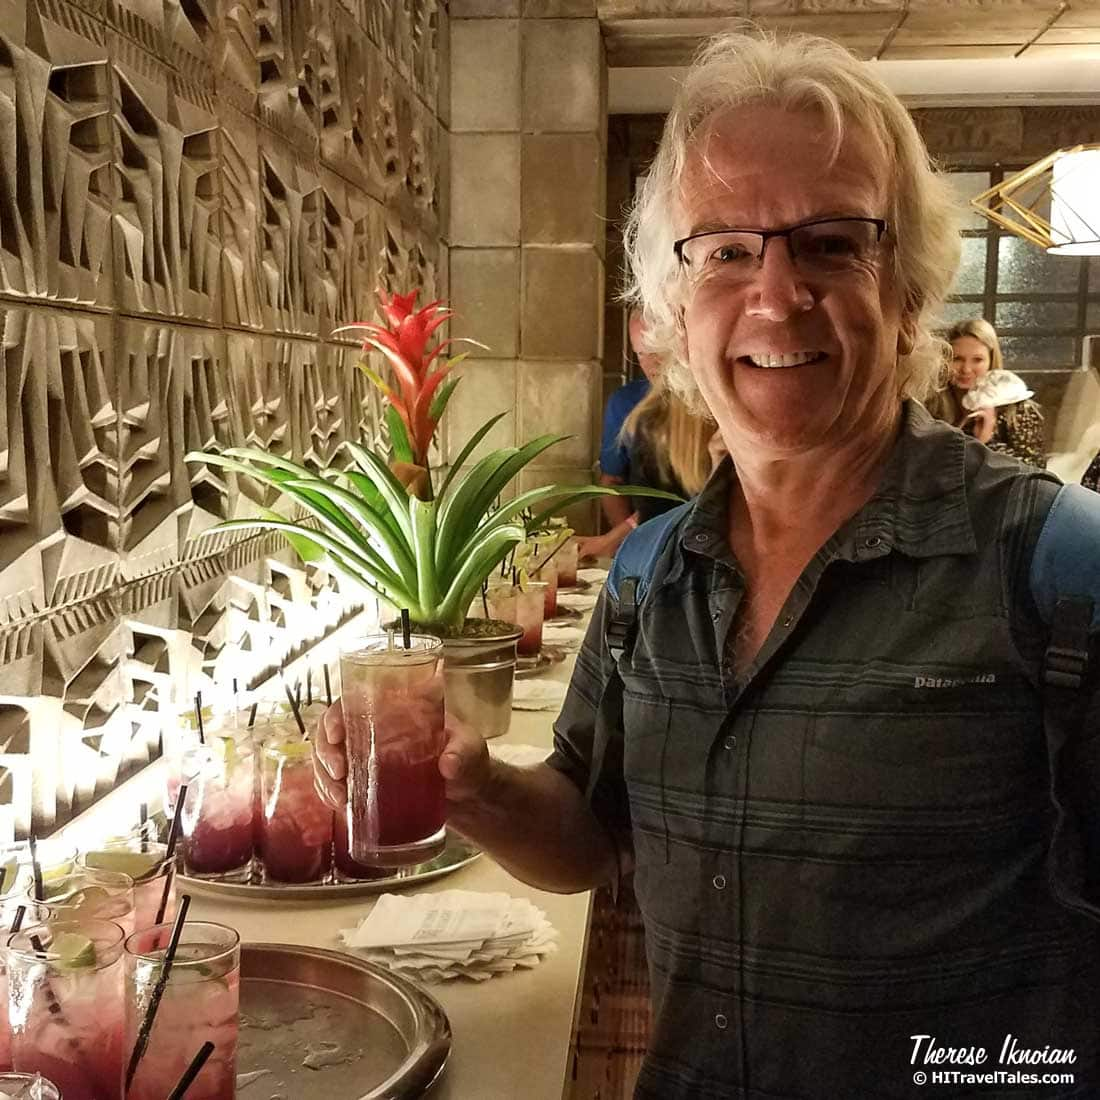 Michael sampling a Tequila Sunrise at the Arizona Biltmore